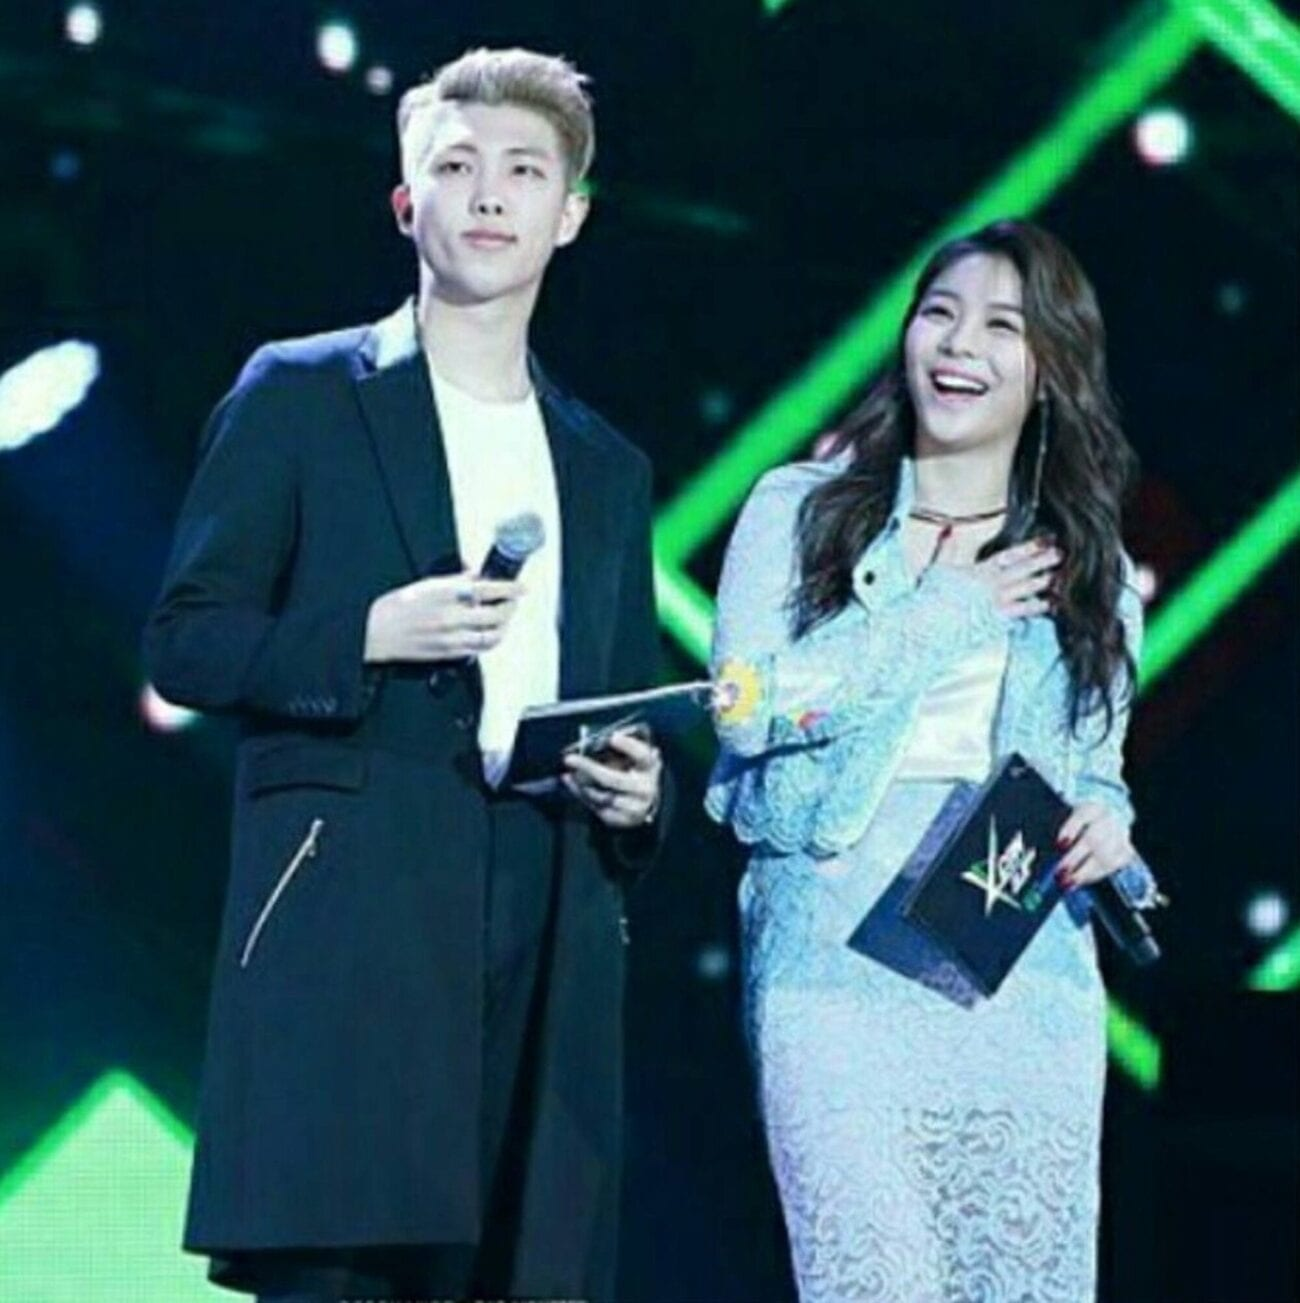 Does RM, leader of BTS, have a girlfriend? Look into all the stars he might have dated and see if there's any truth to the rumors.